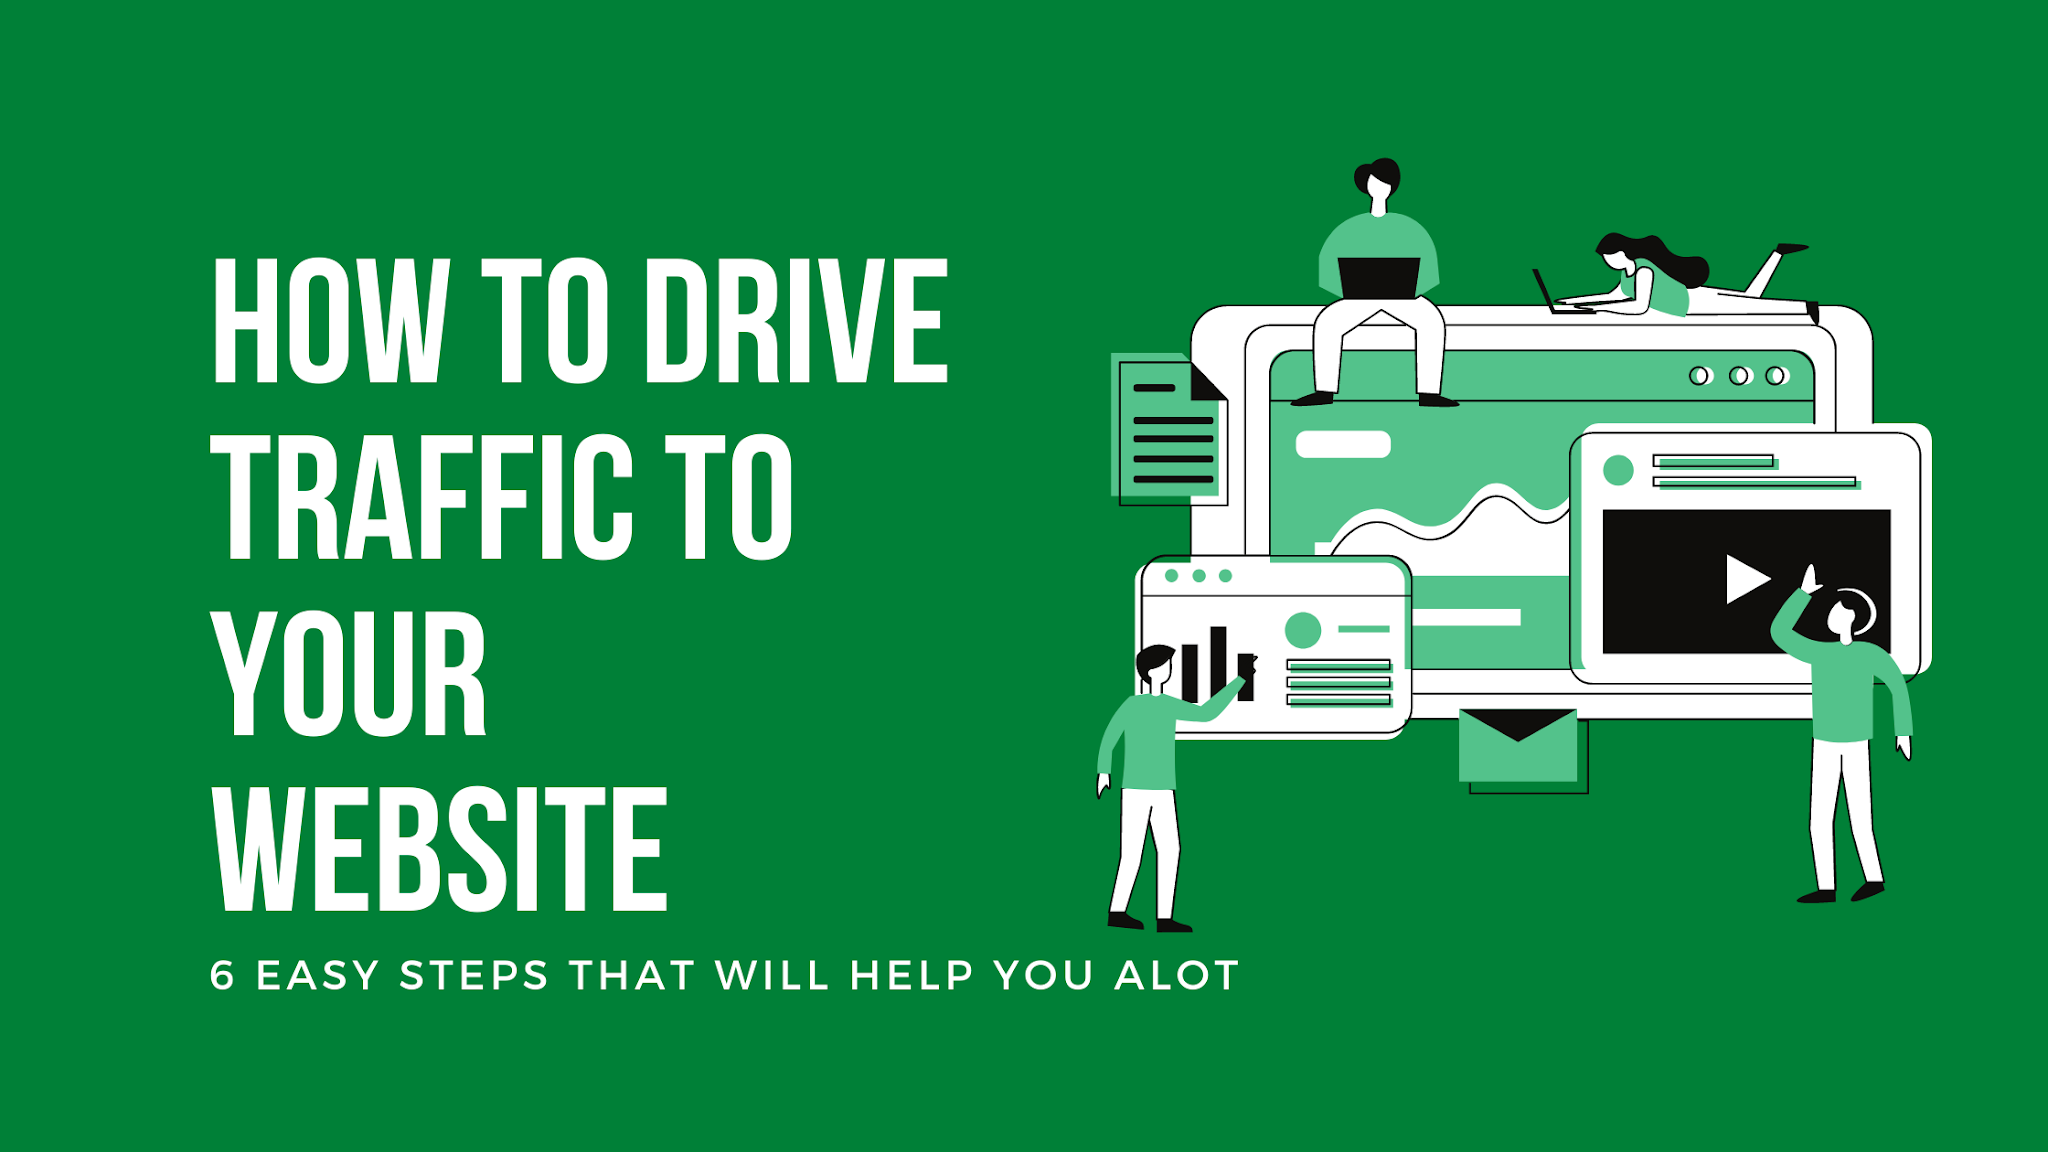 How to Drive Traffic to Your Website - easy steps